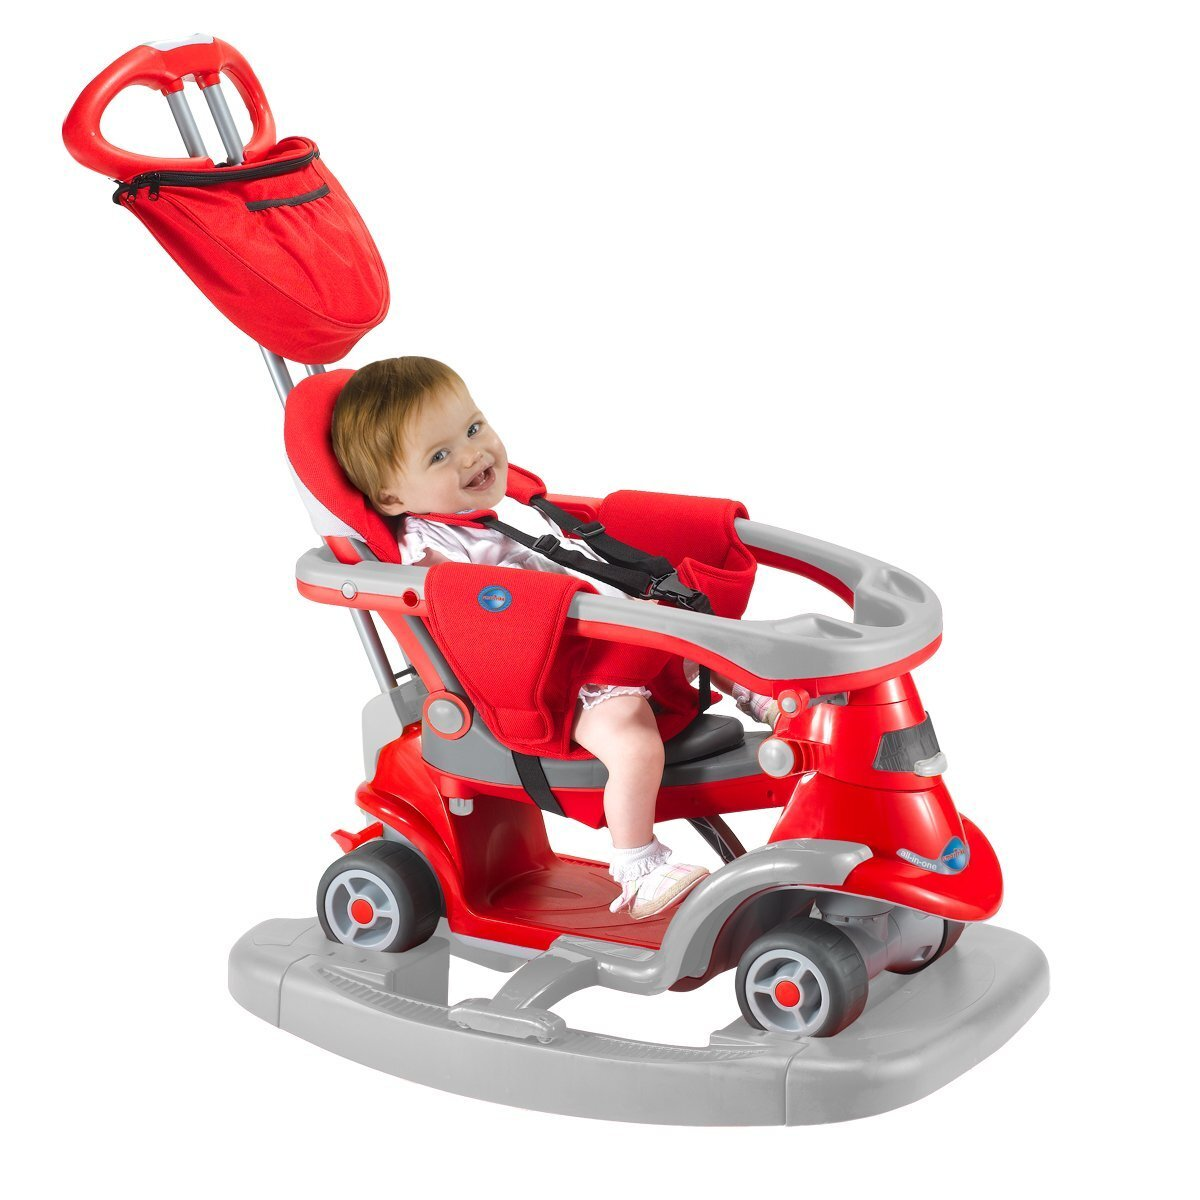 Xe đẩy trẻ em Smart-trike AIO All in One 4 trong 1